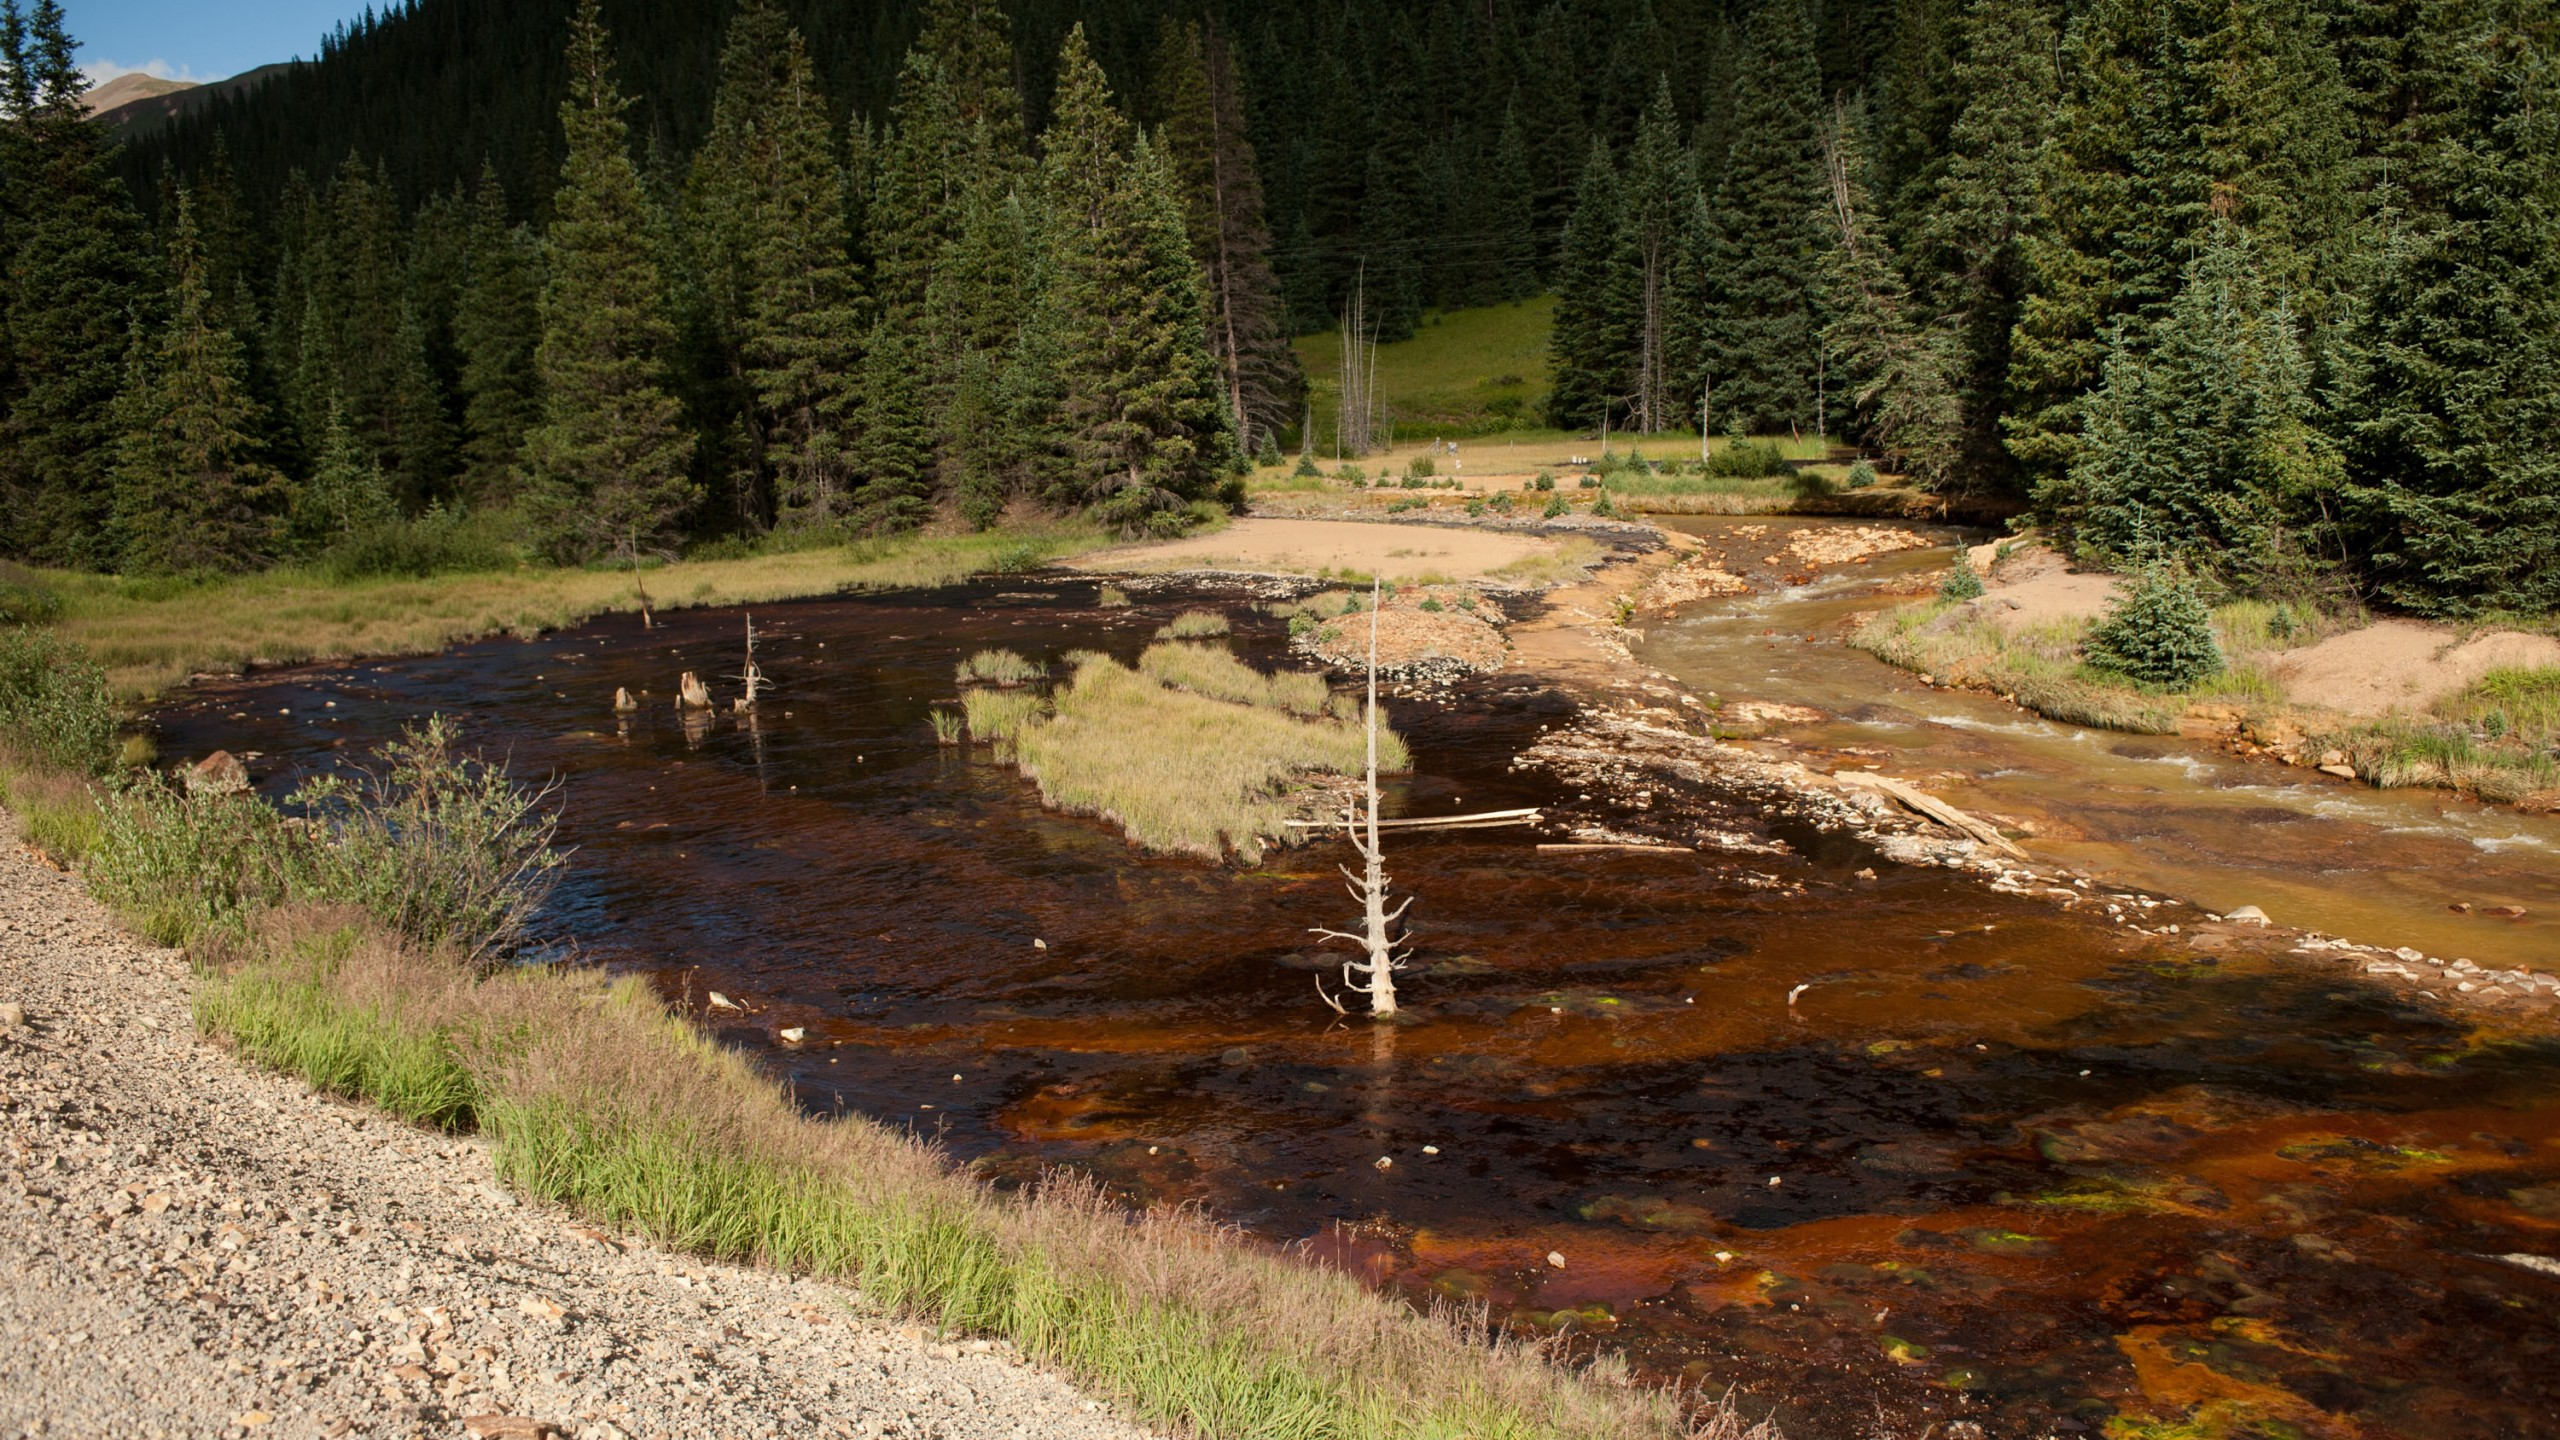 Cement Creek, which was flooded with millions of gallons of mining wastewater, is viewed on August 11, 2015 in Silverton, Colorado. (Credit: Theo Stroomer/Getty Images)